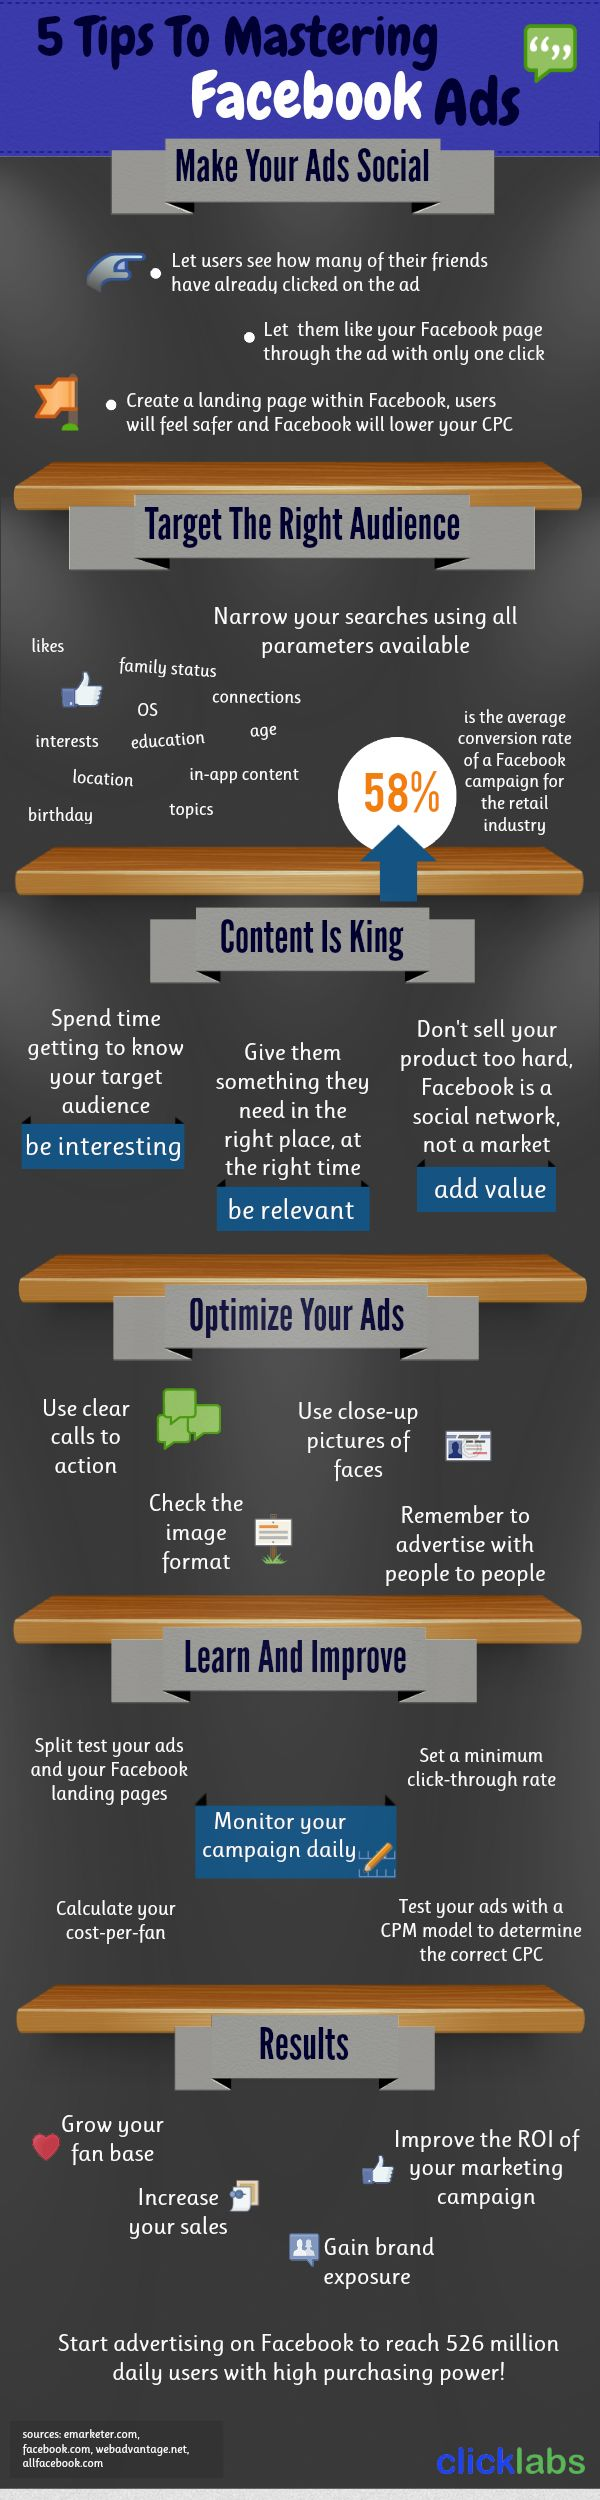 5 Tips To Mastering Facebook Ads [INFOGRAPHIC] #Facebook #ads